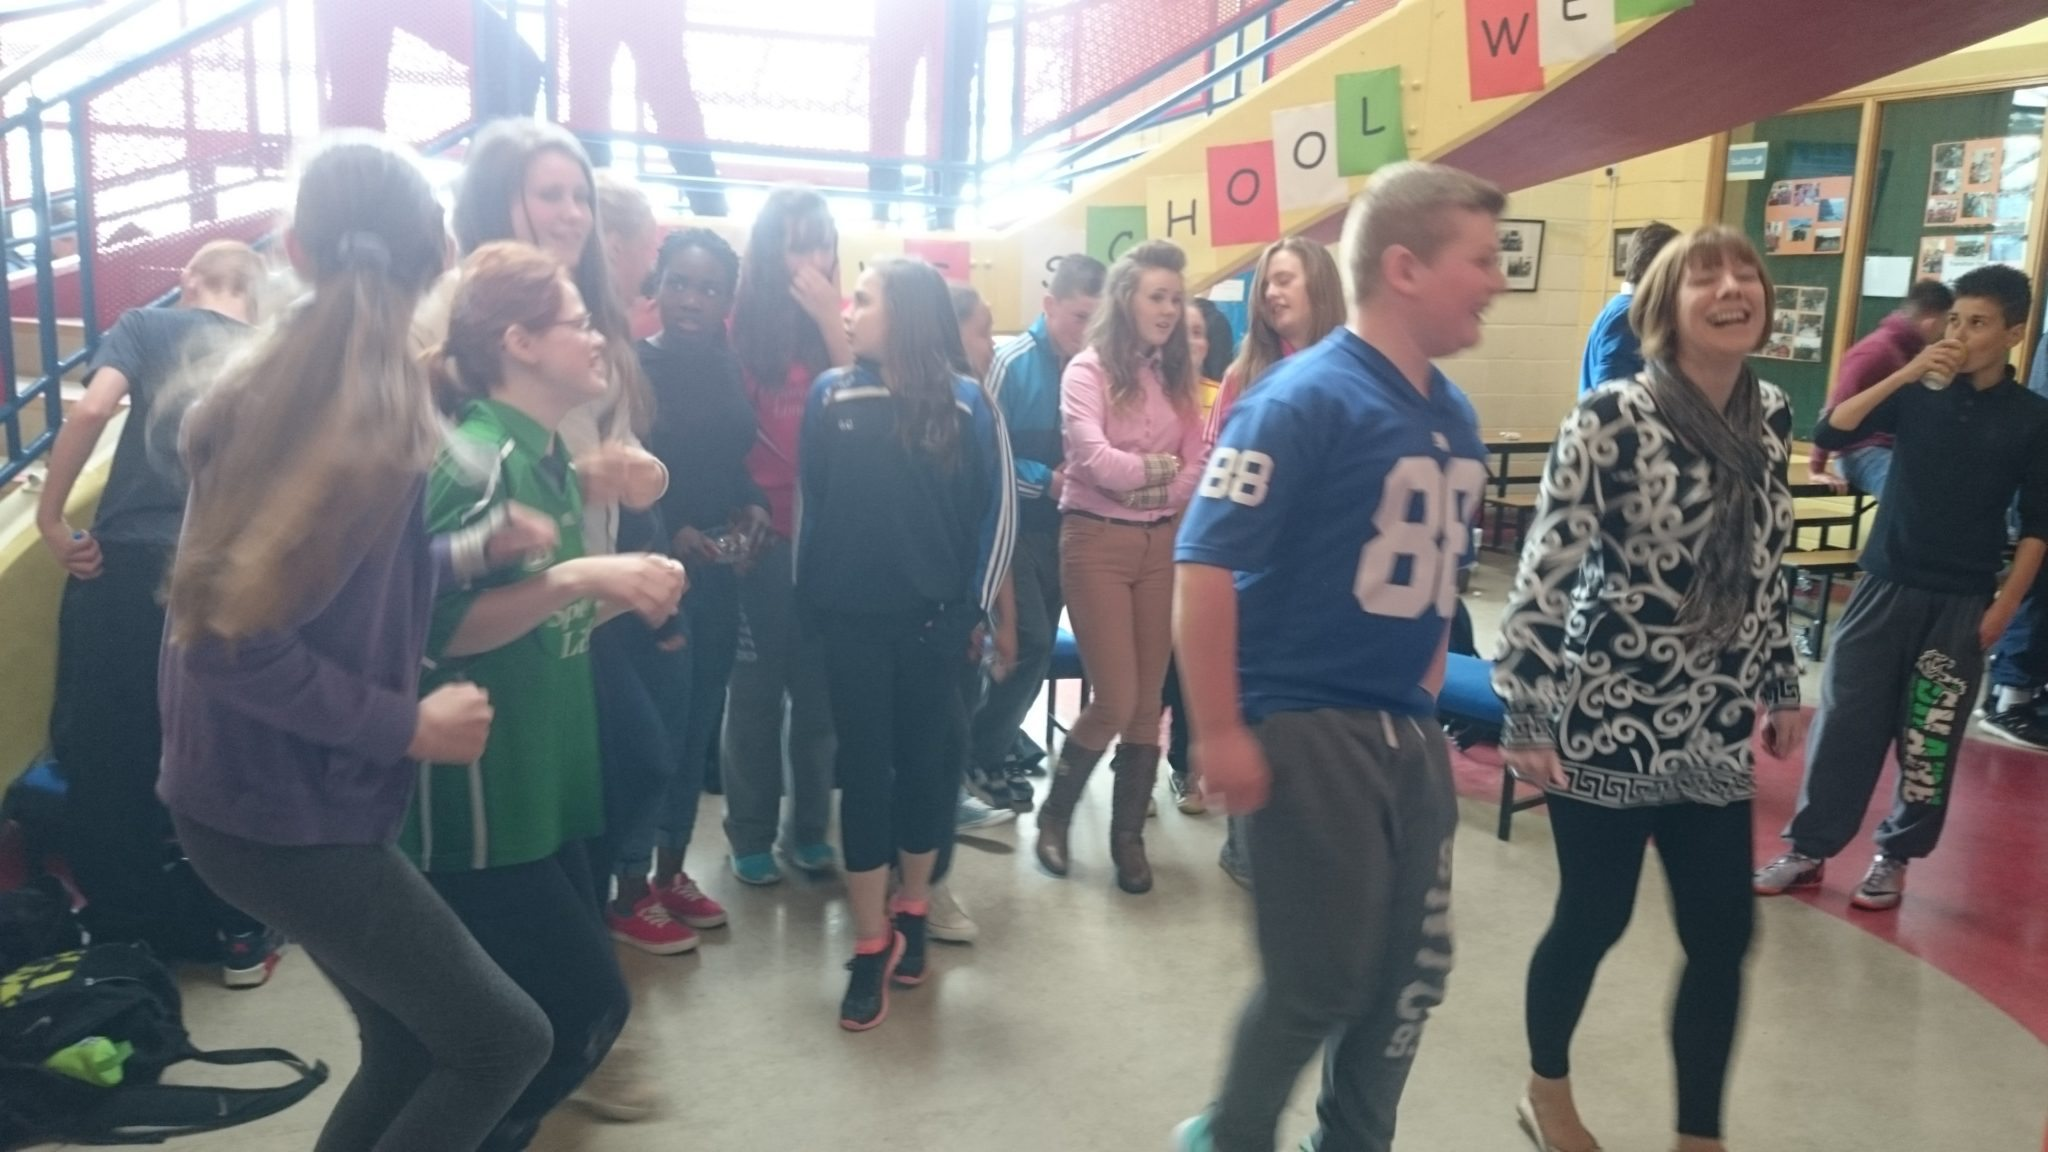 Desmond College : Irish Traditional Flash Mob